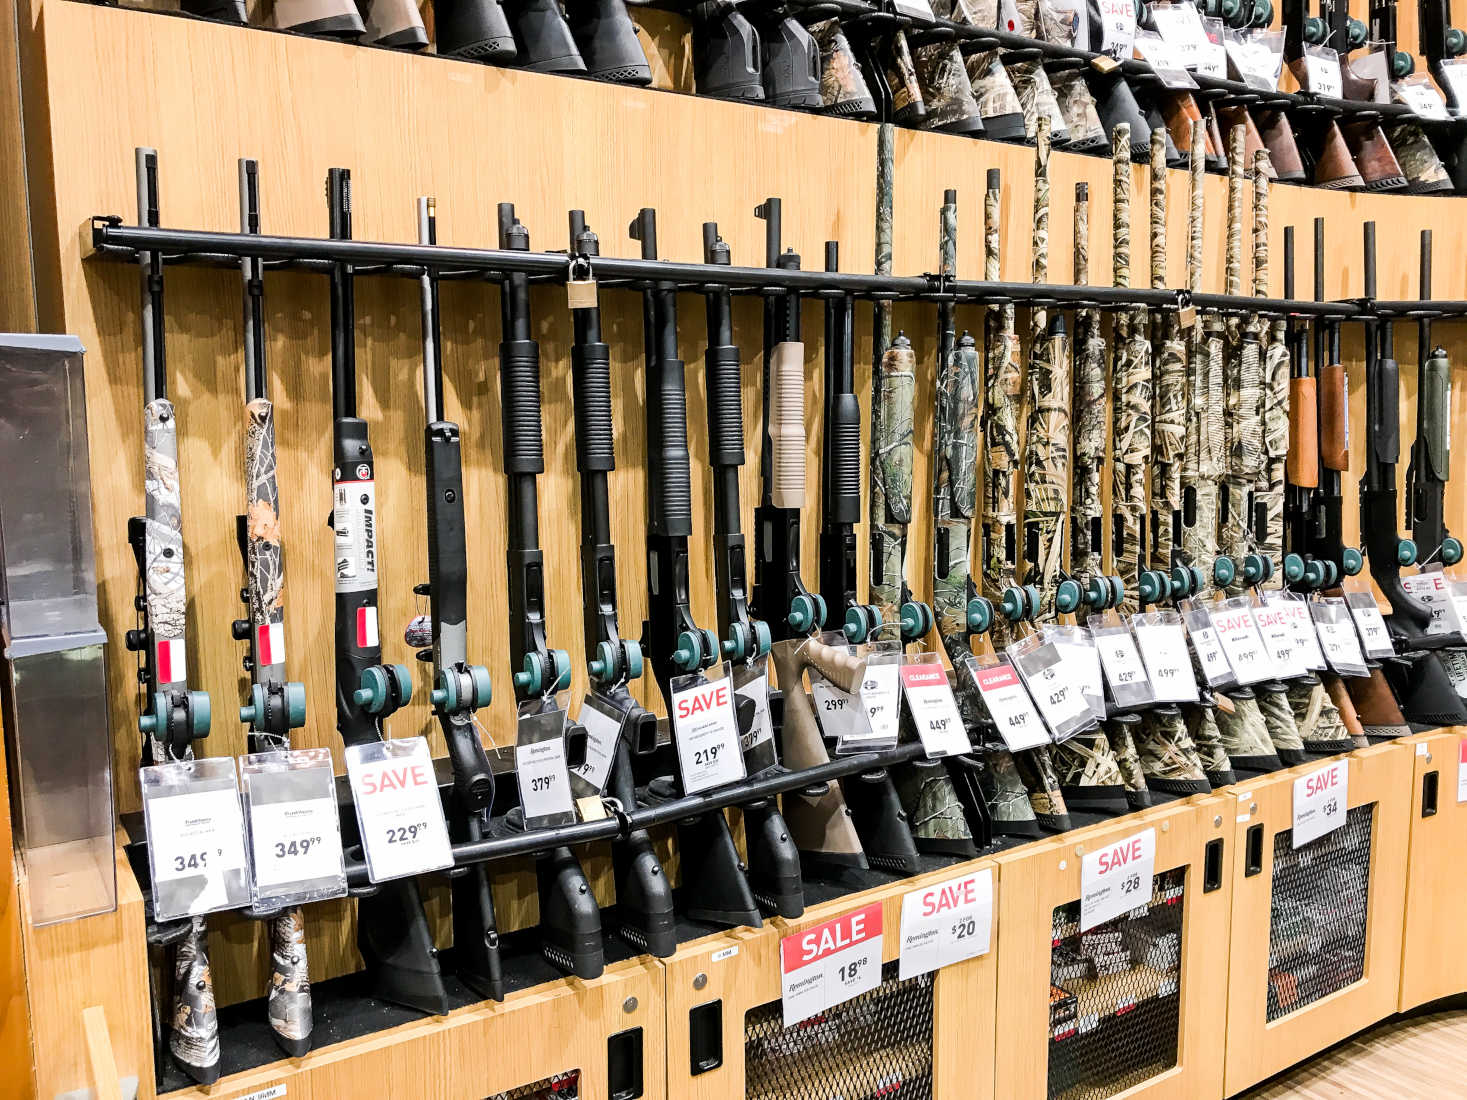 Dick's Sporting Goods Has Lost $150 Million over Anti-Gun Policy